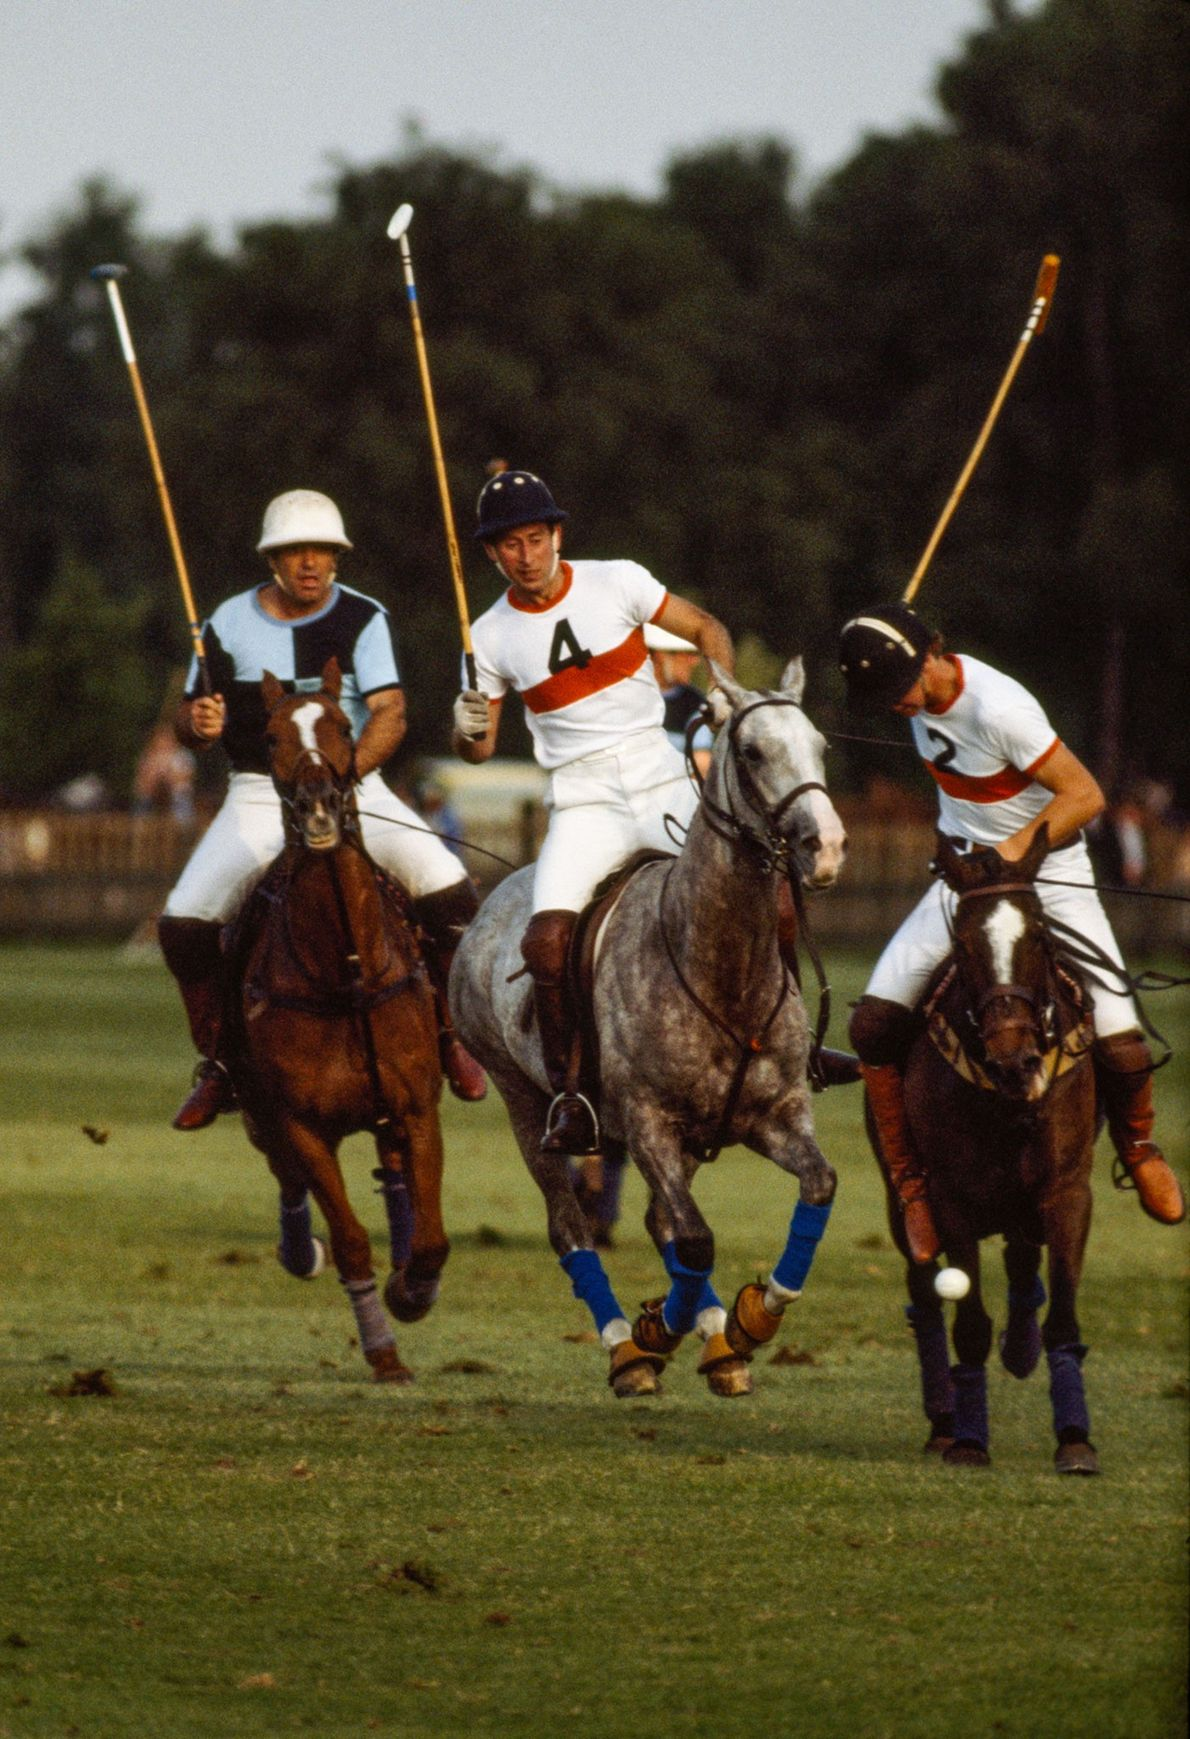 Prince Charles playing polo in Windsor, England, in 1979.